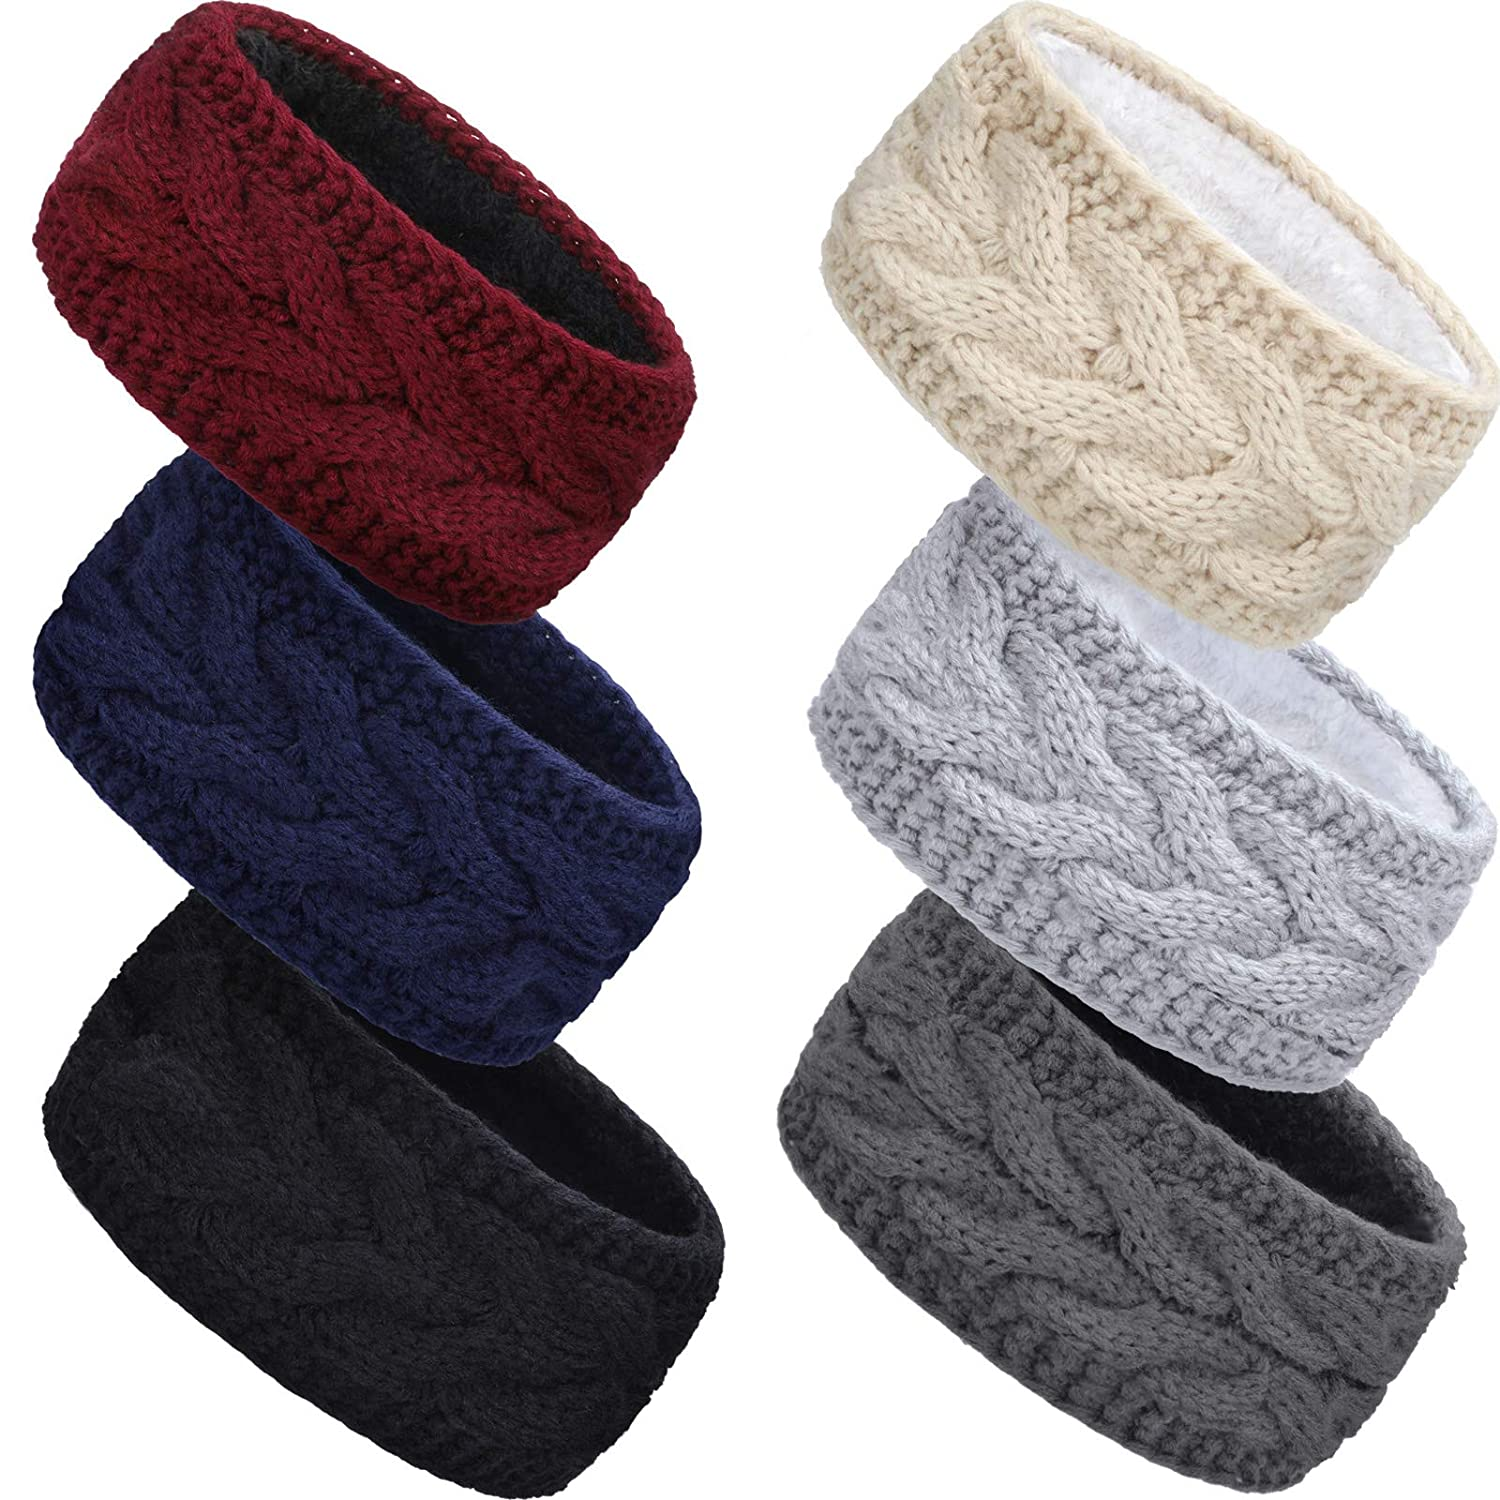 6 Pieces Winter Cable Knit Headband Fleece Lined Winter Ear Warmer Headband Wrap for Christmas Valentine's Day Giving (Classic Colors)